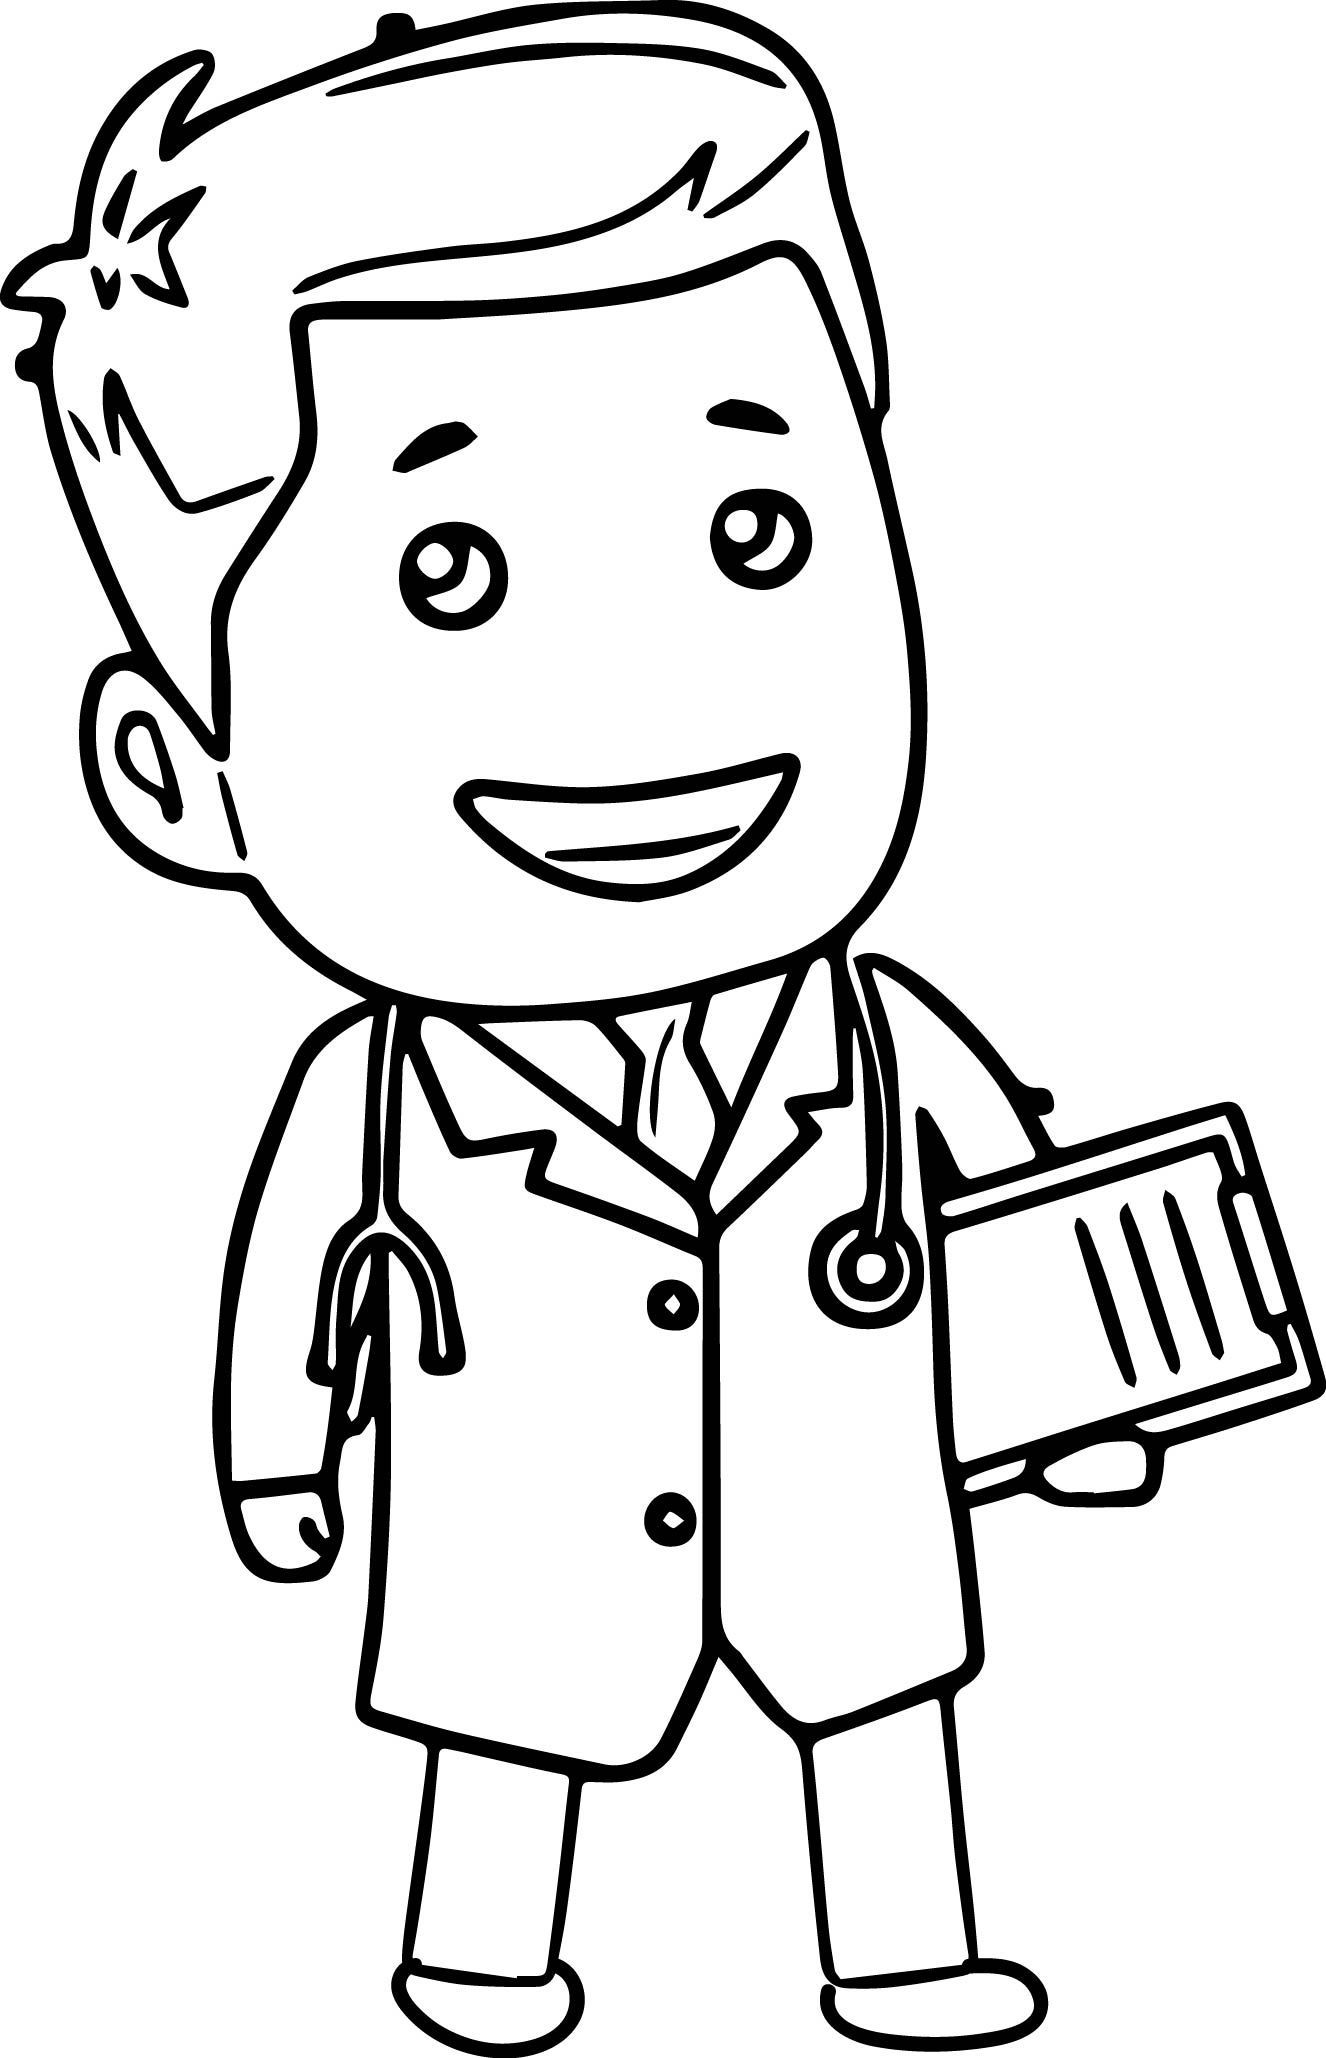 Doctor Tools Clipart Doctor Cartoon Coloring Page